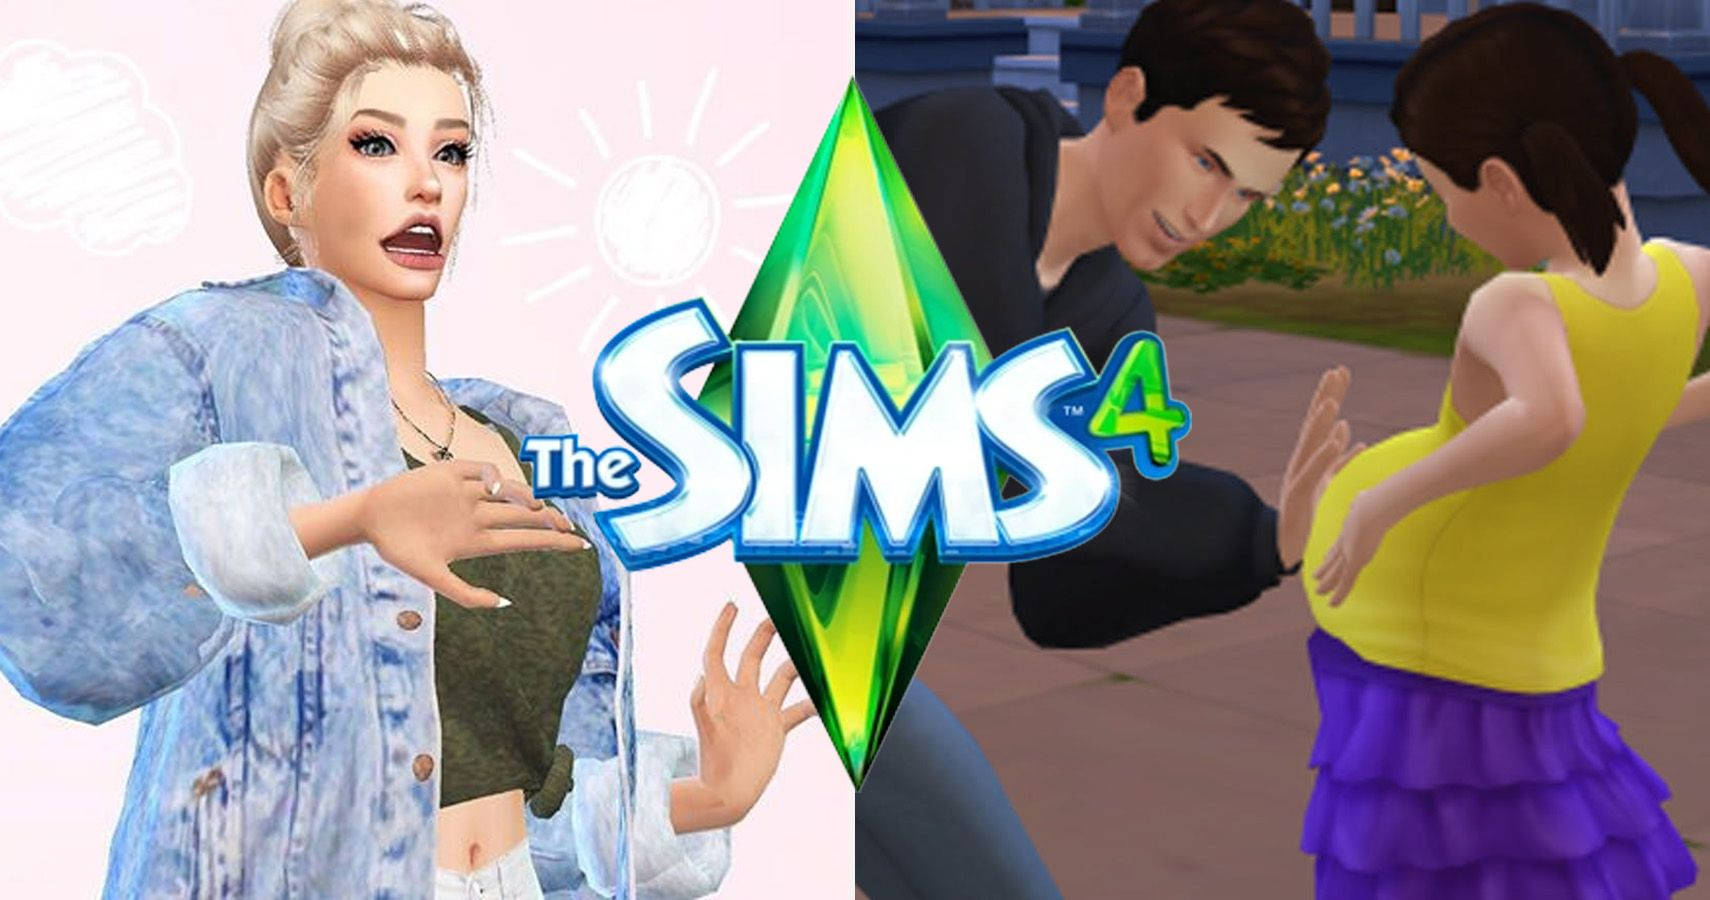 Unsettling Facts You Didn't Know About The Sims 4 | TheGamer